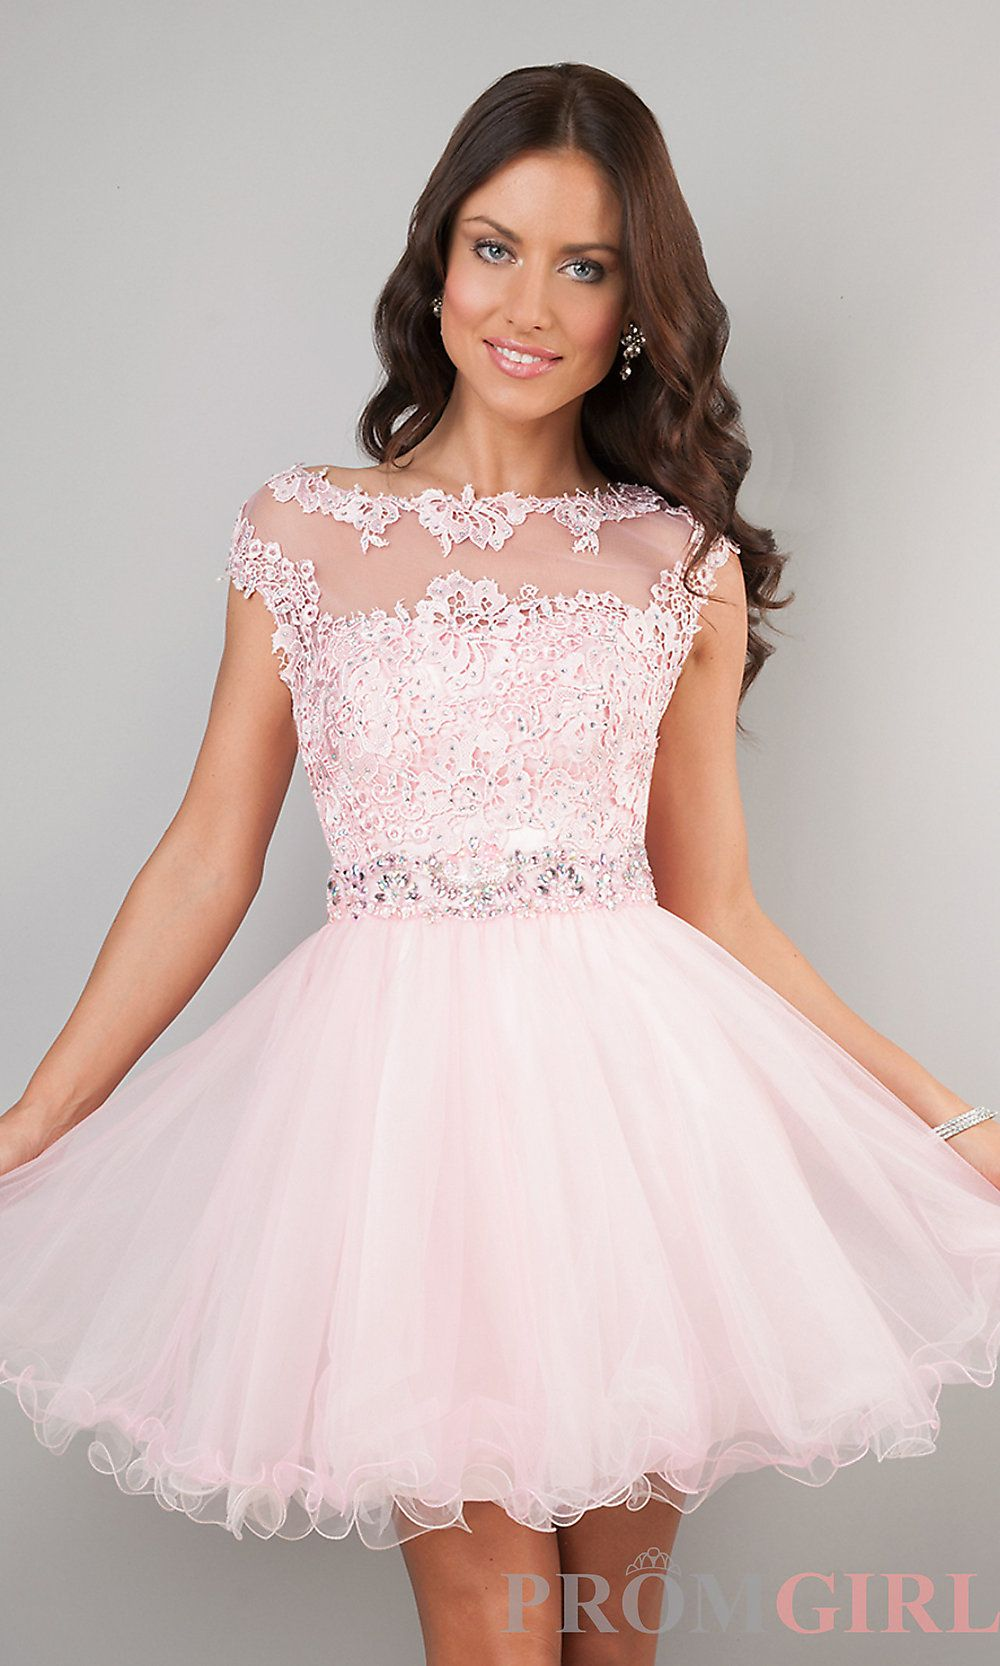 black and white 8 grade dance dresses | Prom Dresses With ...